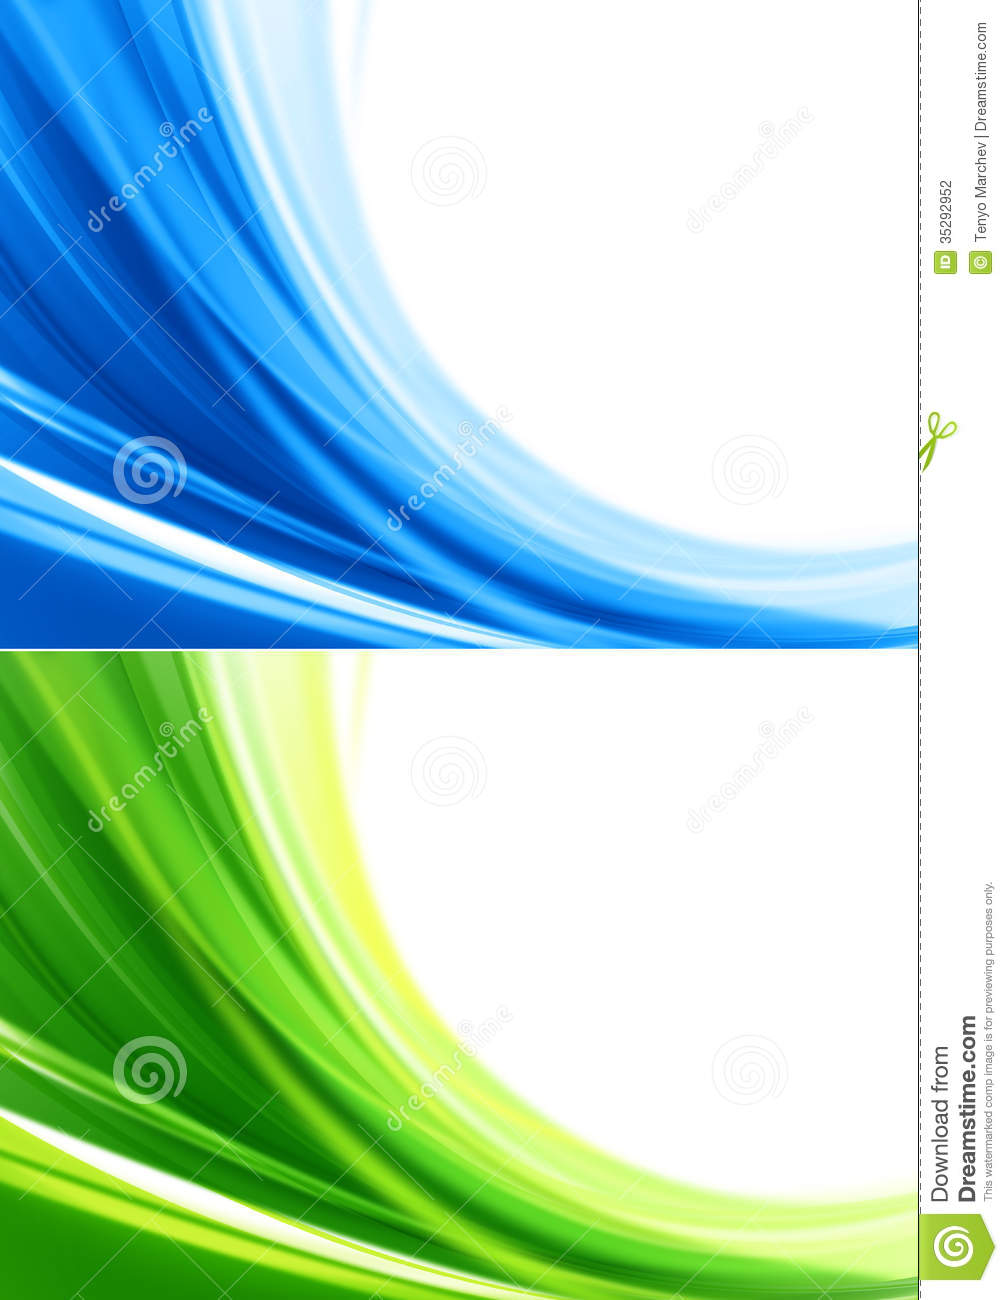 Blue and green color backgrounds